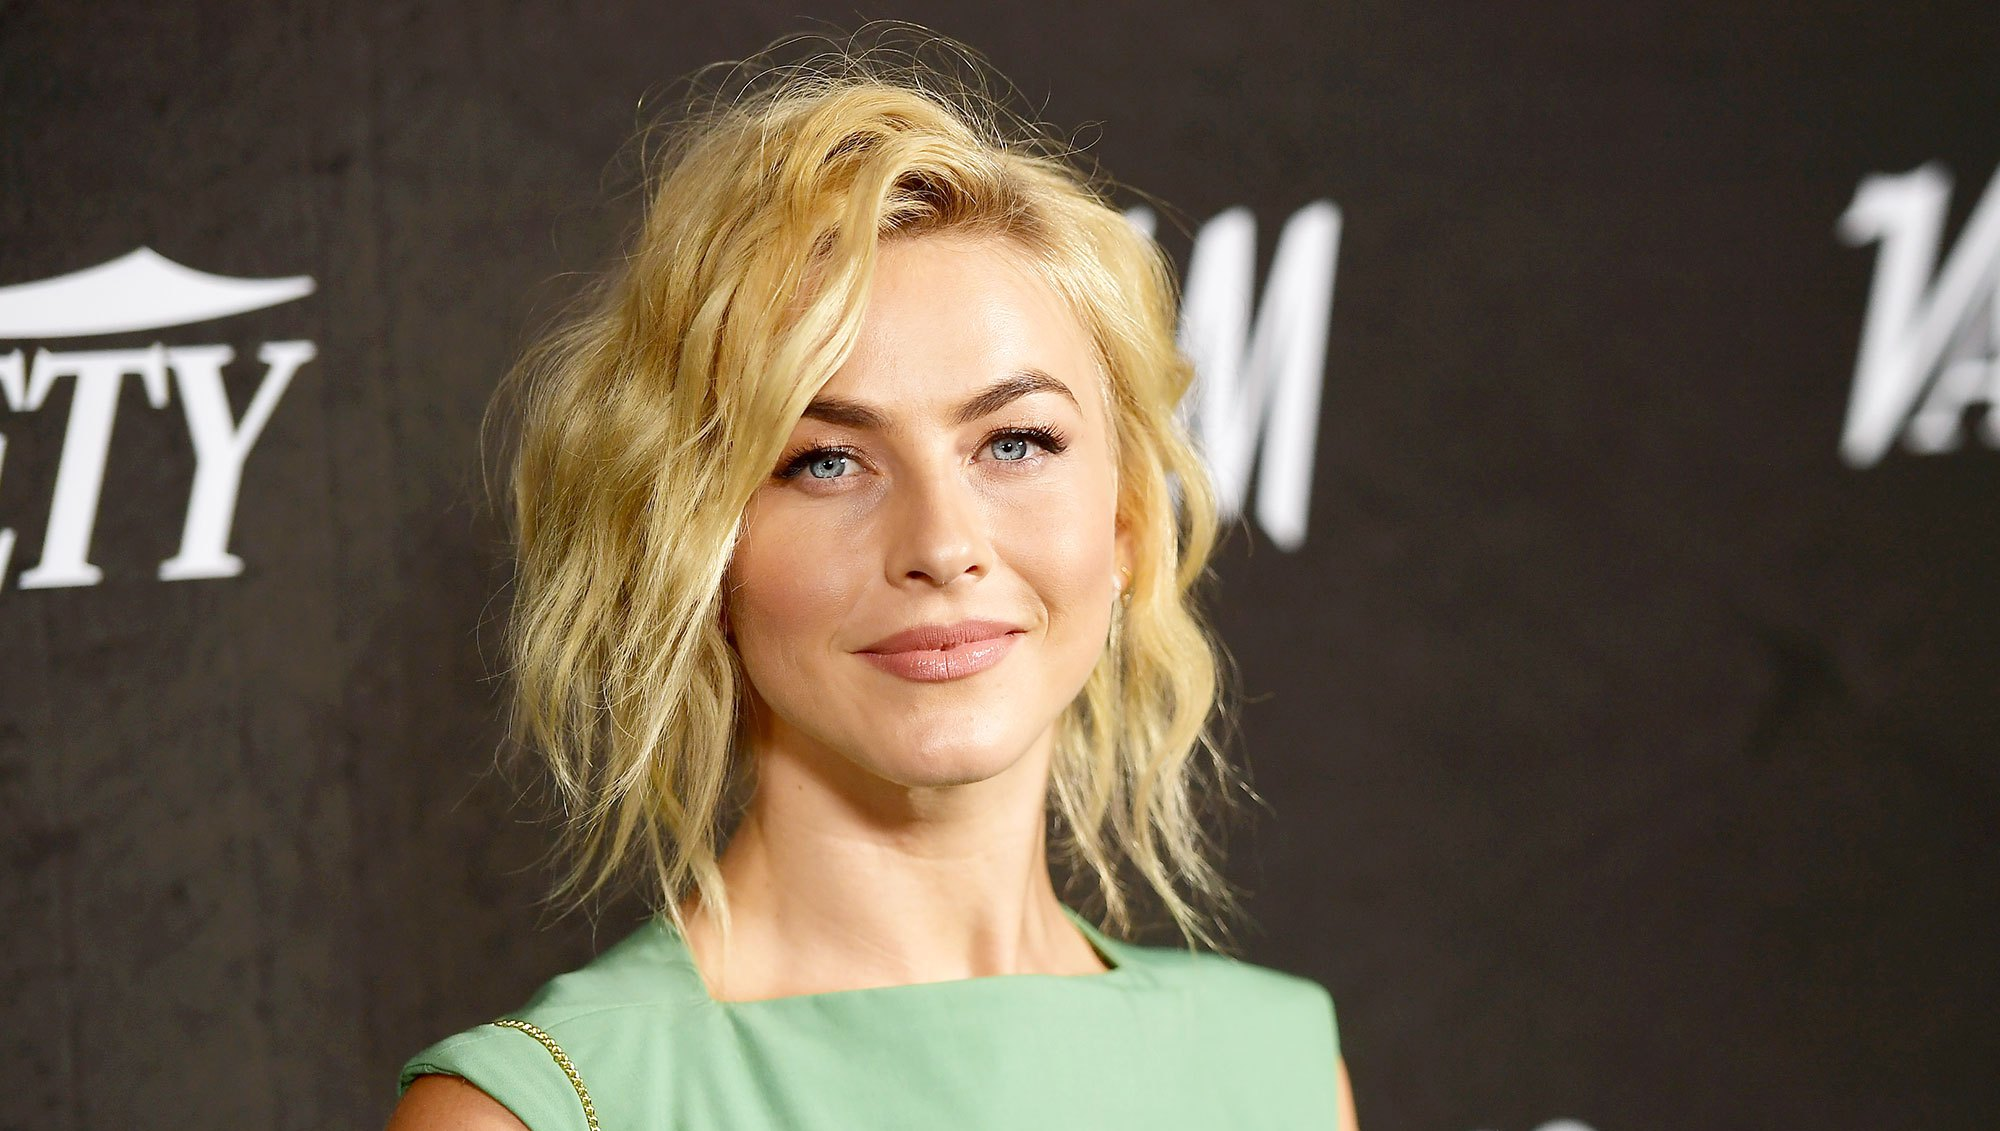 Julianne Hough Endometriosis